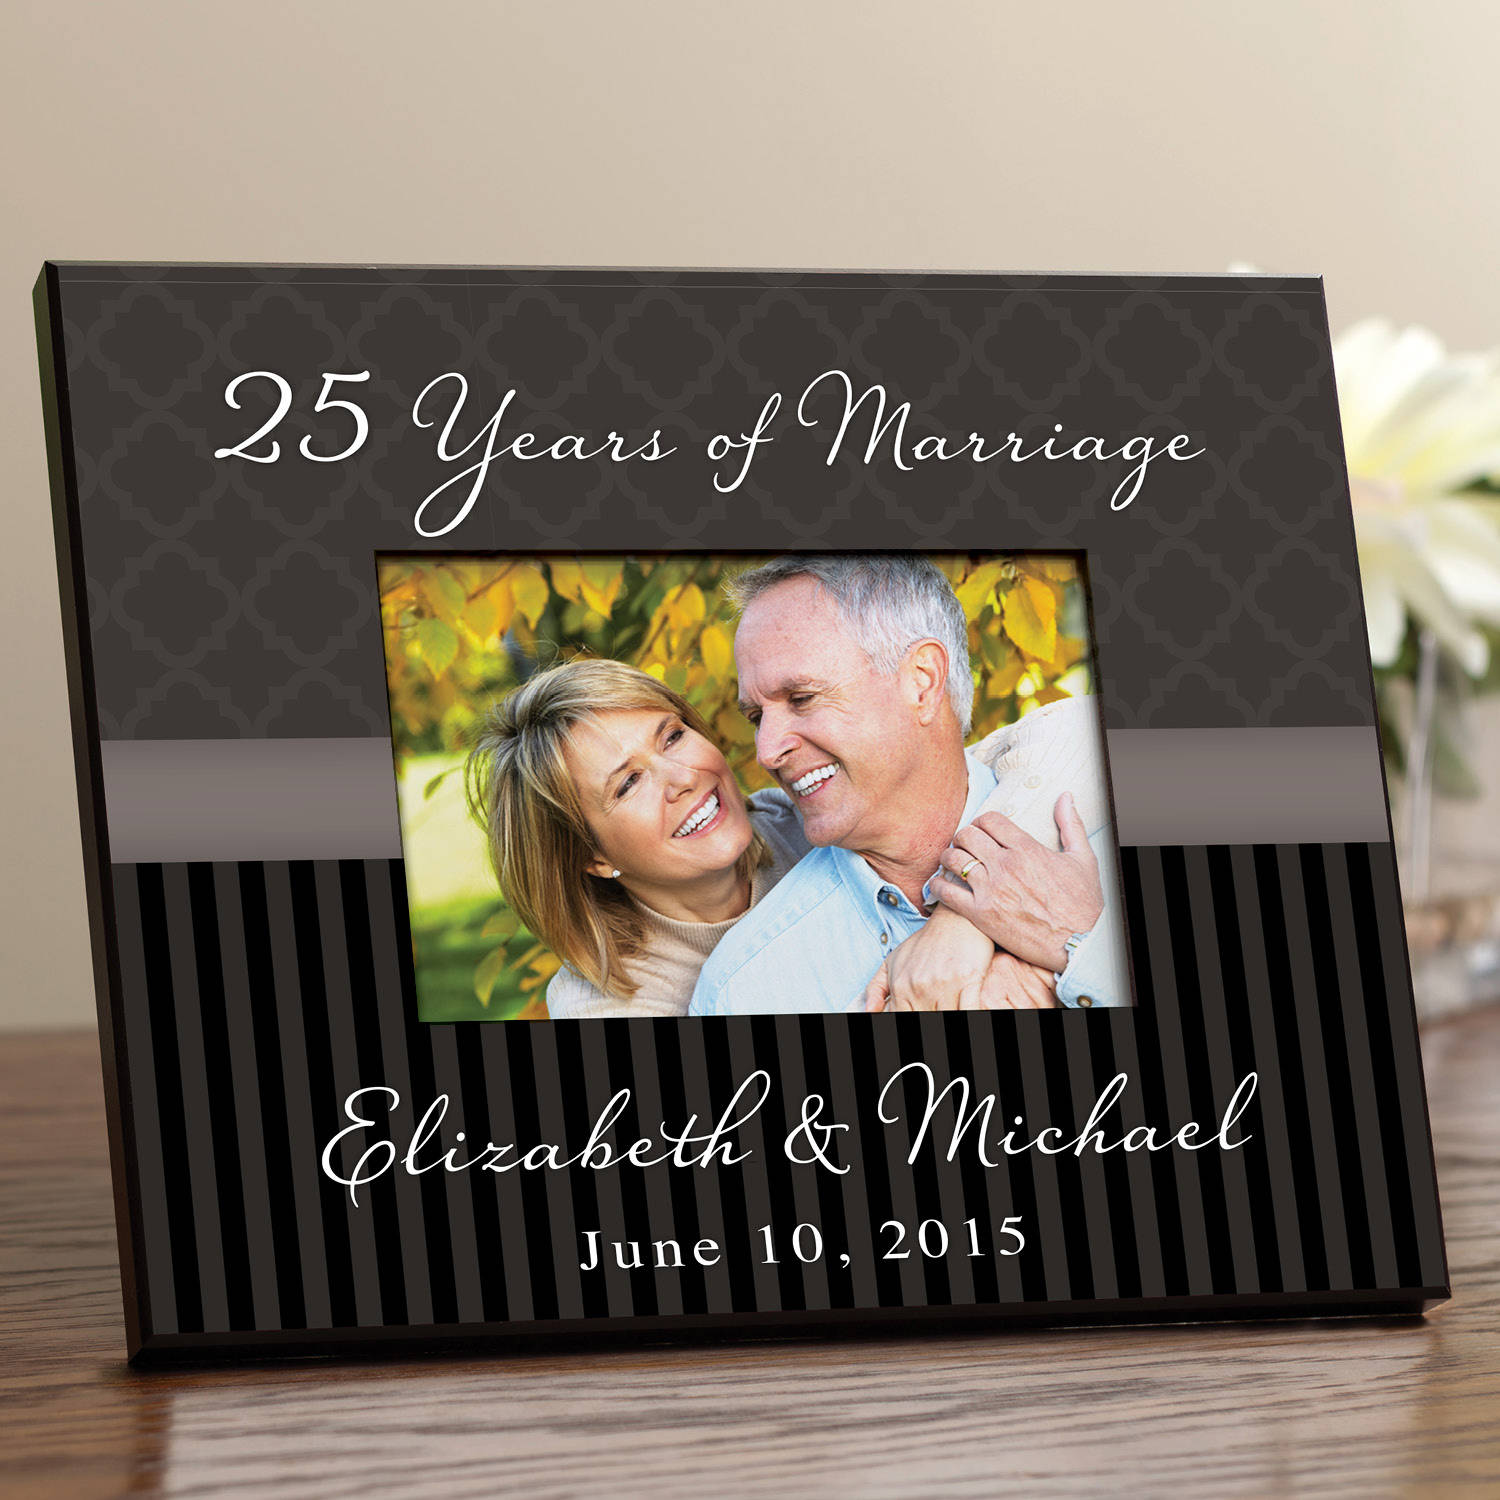 Personalized Happy Anniversary Frame